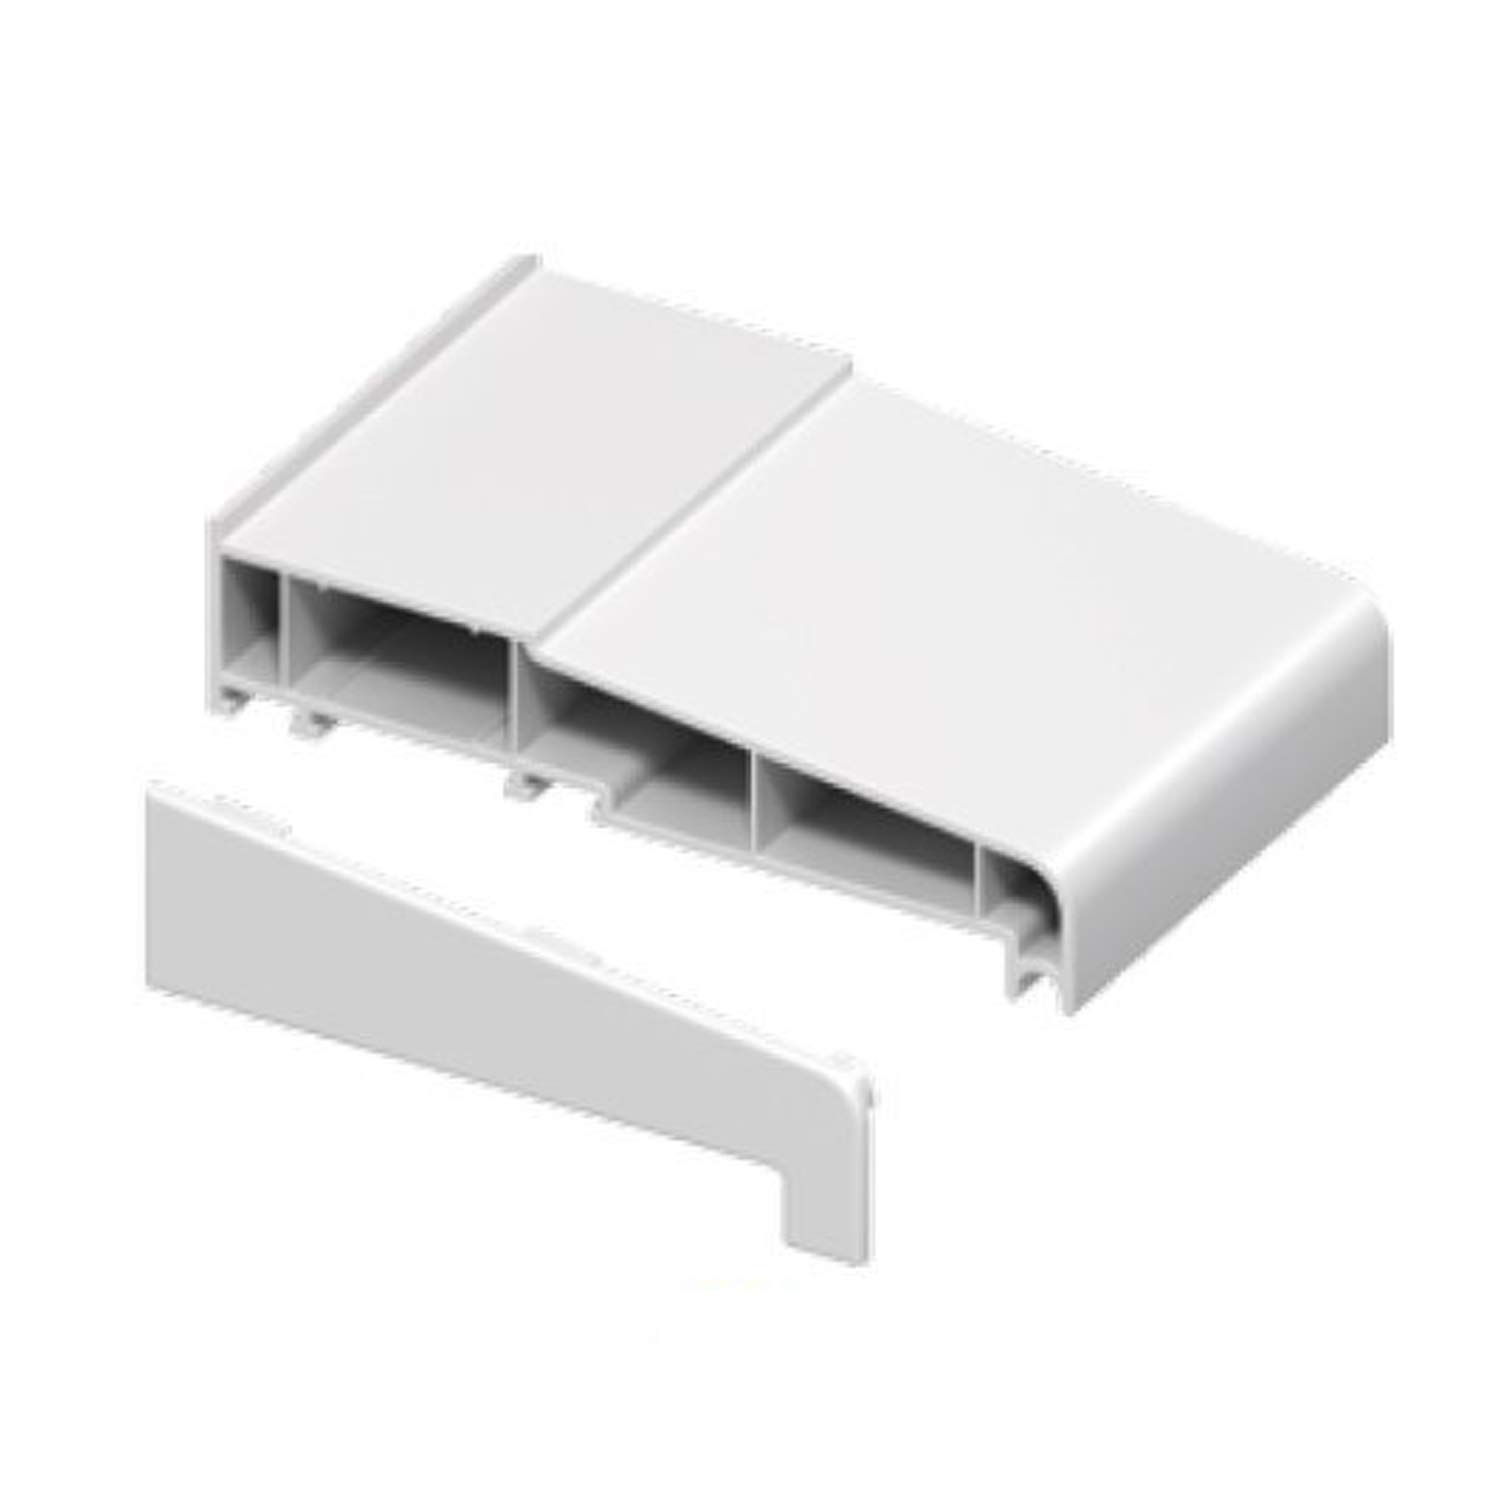 1 x Pair of White 150mm Window Cill End Caps - Suitable for many manufacturers uPVC window cills Eurocell